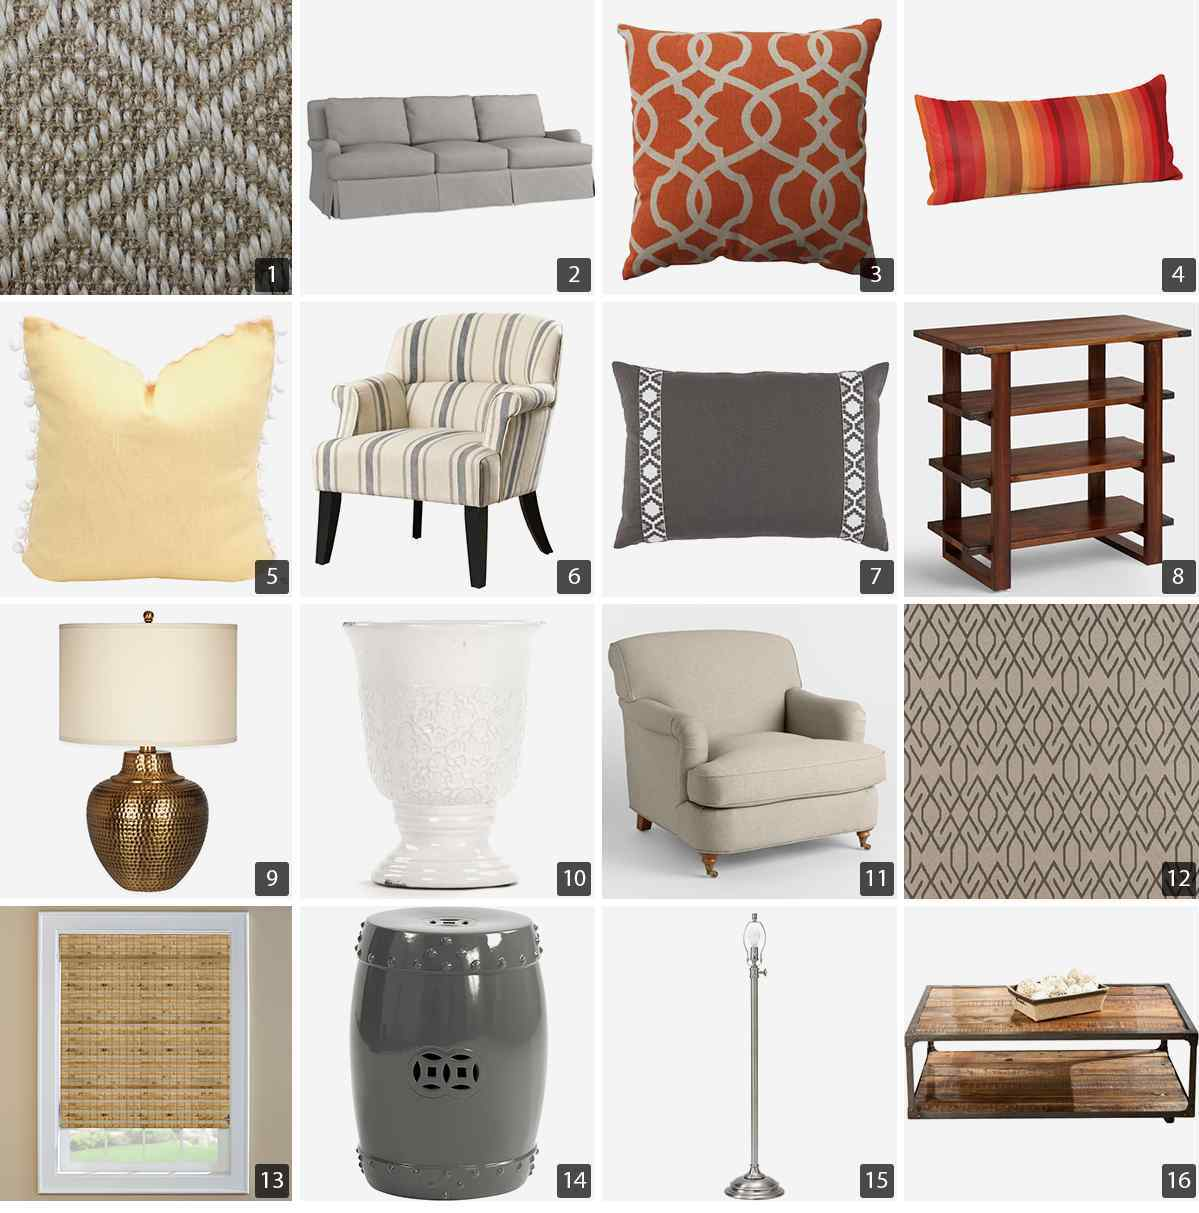 Collage of home products including gray sofa, orange and yellow throw pillows, and wood tables photo